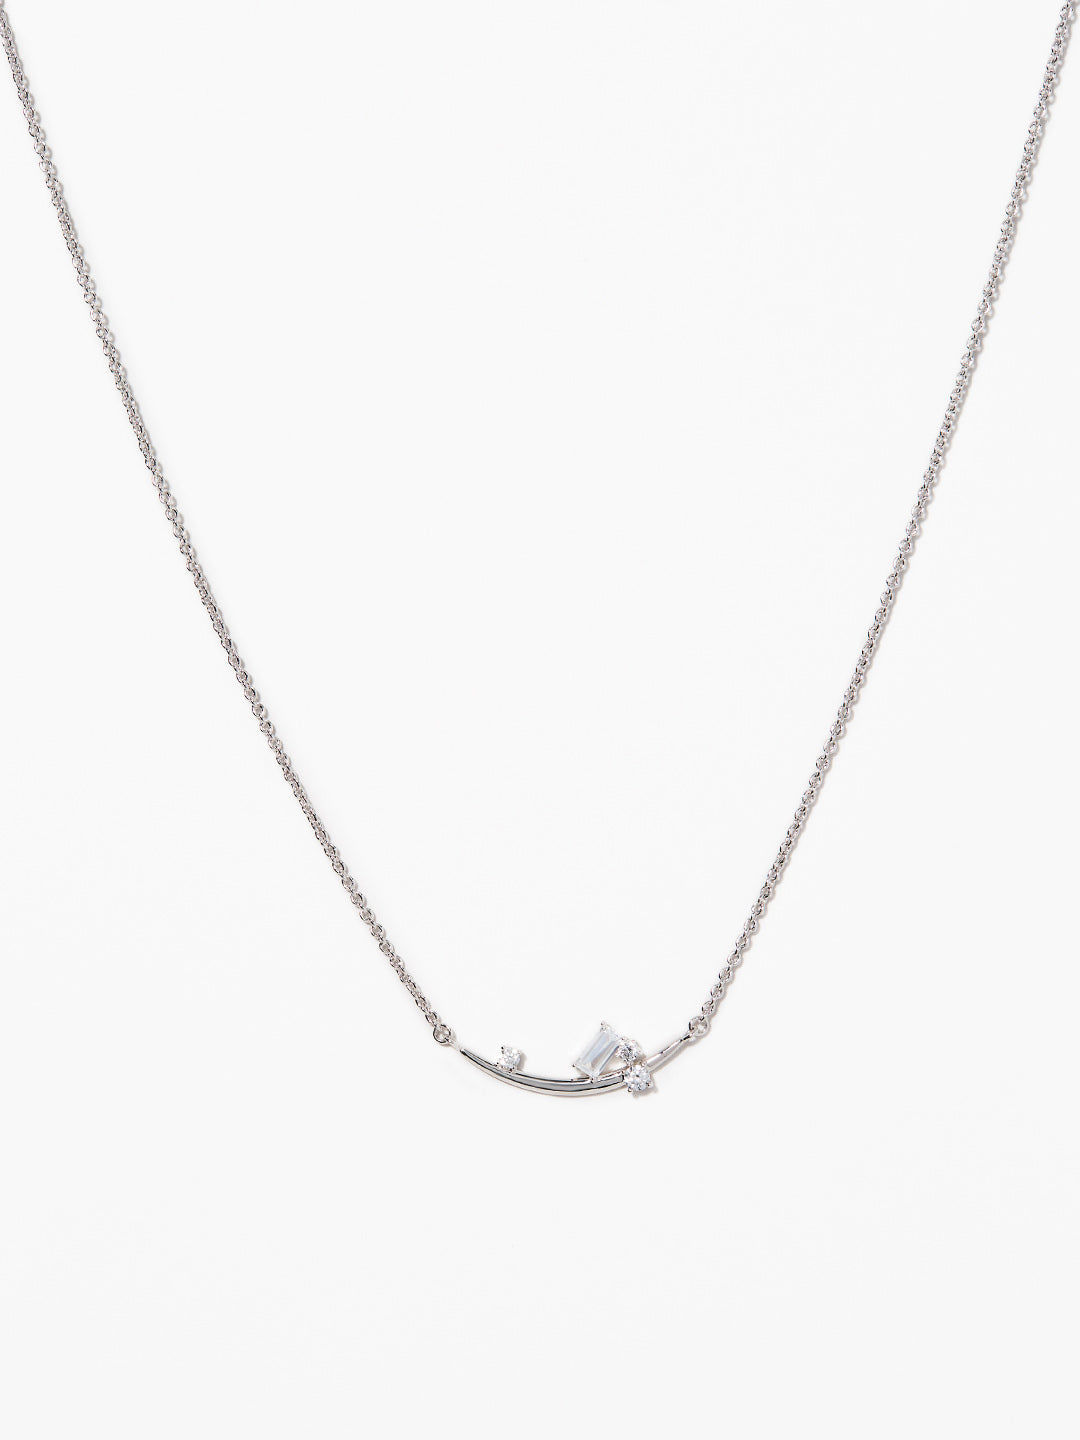 Ana Luisa Jewelry Co-Creation Necklaces Pendant Necklace Silver Mountain Necklace Hrafna Silver